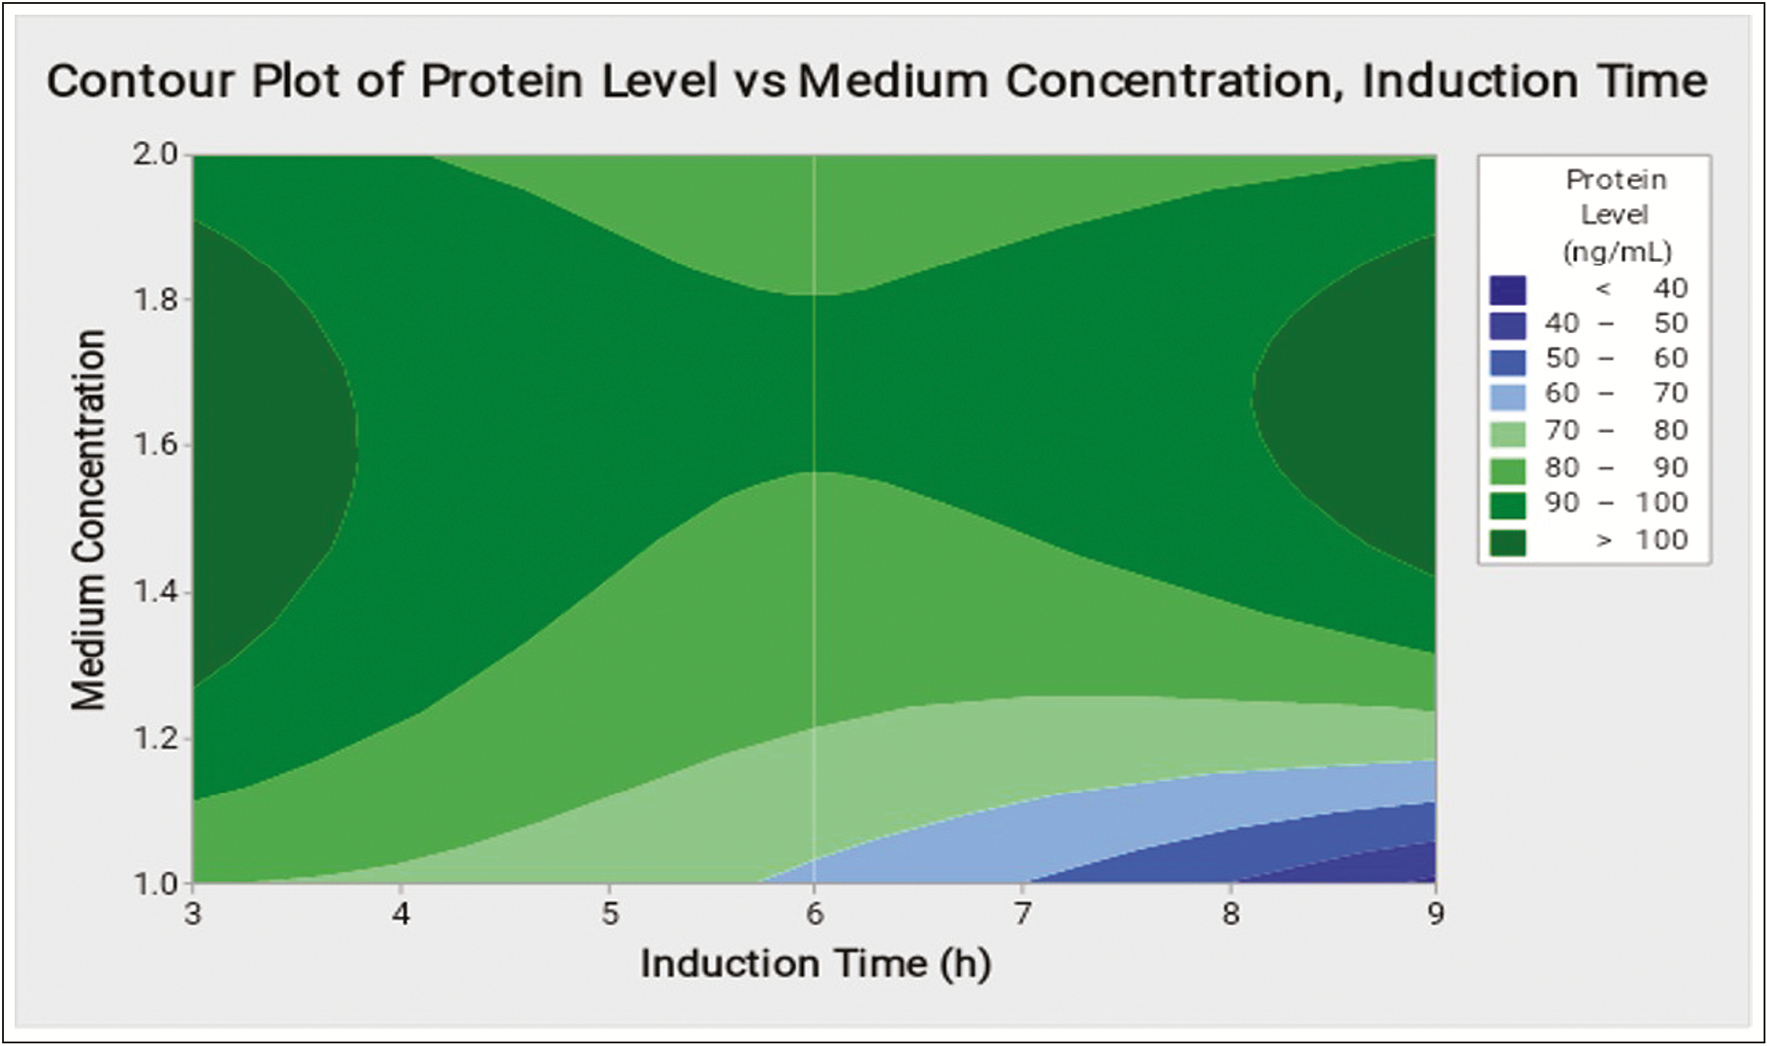 Figure 1: Contour plot of protein level (ng m/L) in function of medium concentration and induction time (h)